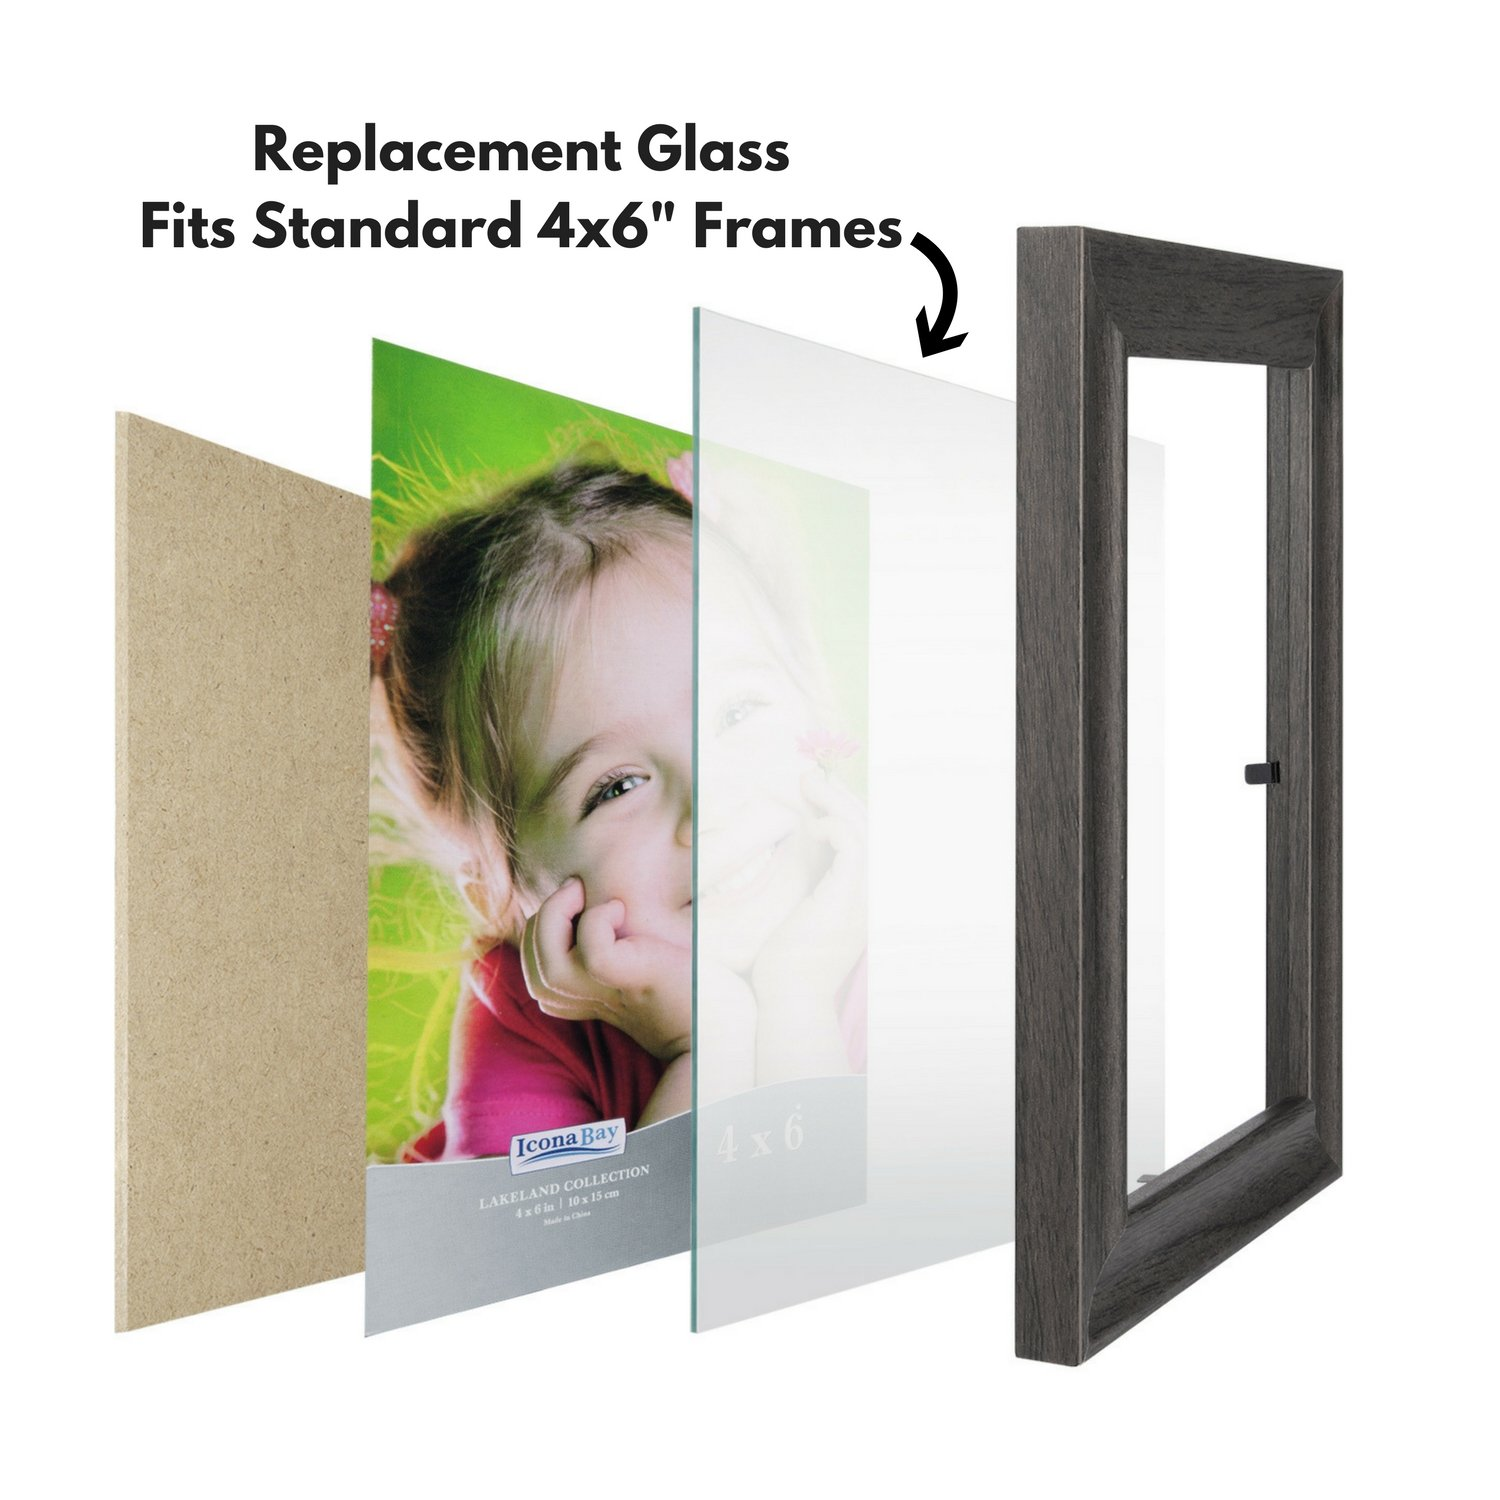 Amazon.com - Icona Bay 4x6 Picture Frame Glass Replacement (4 x 6, 2 ...